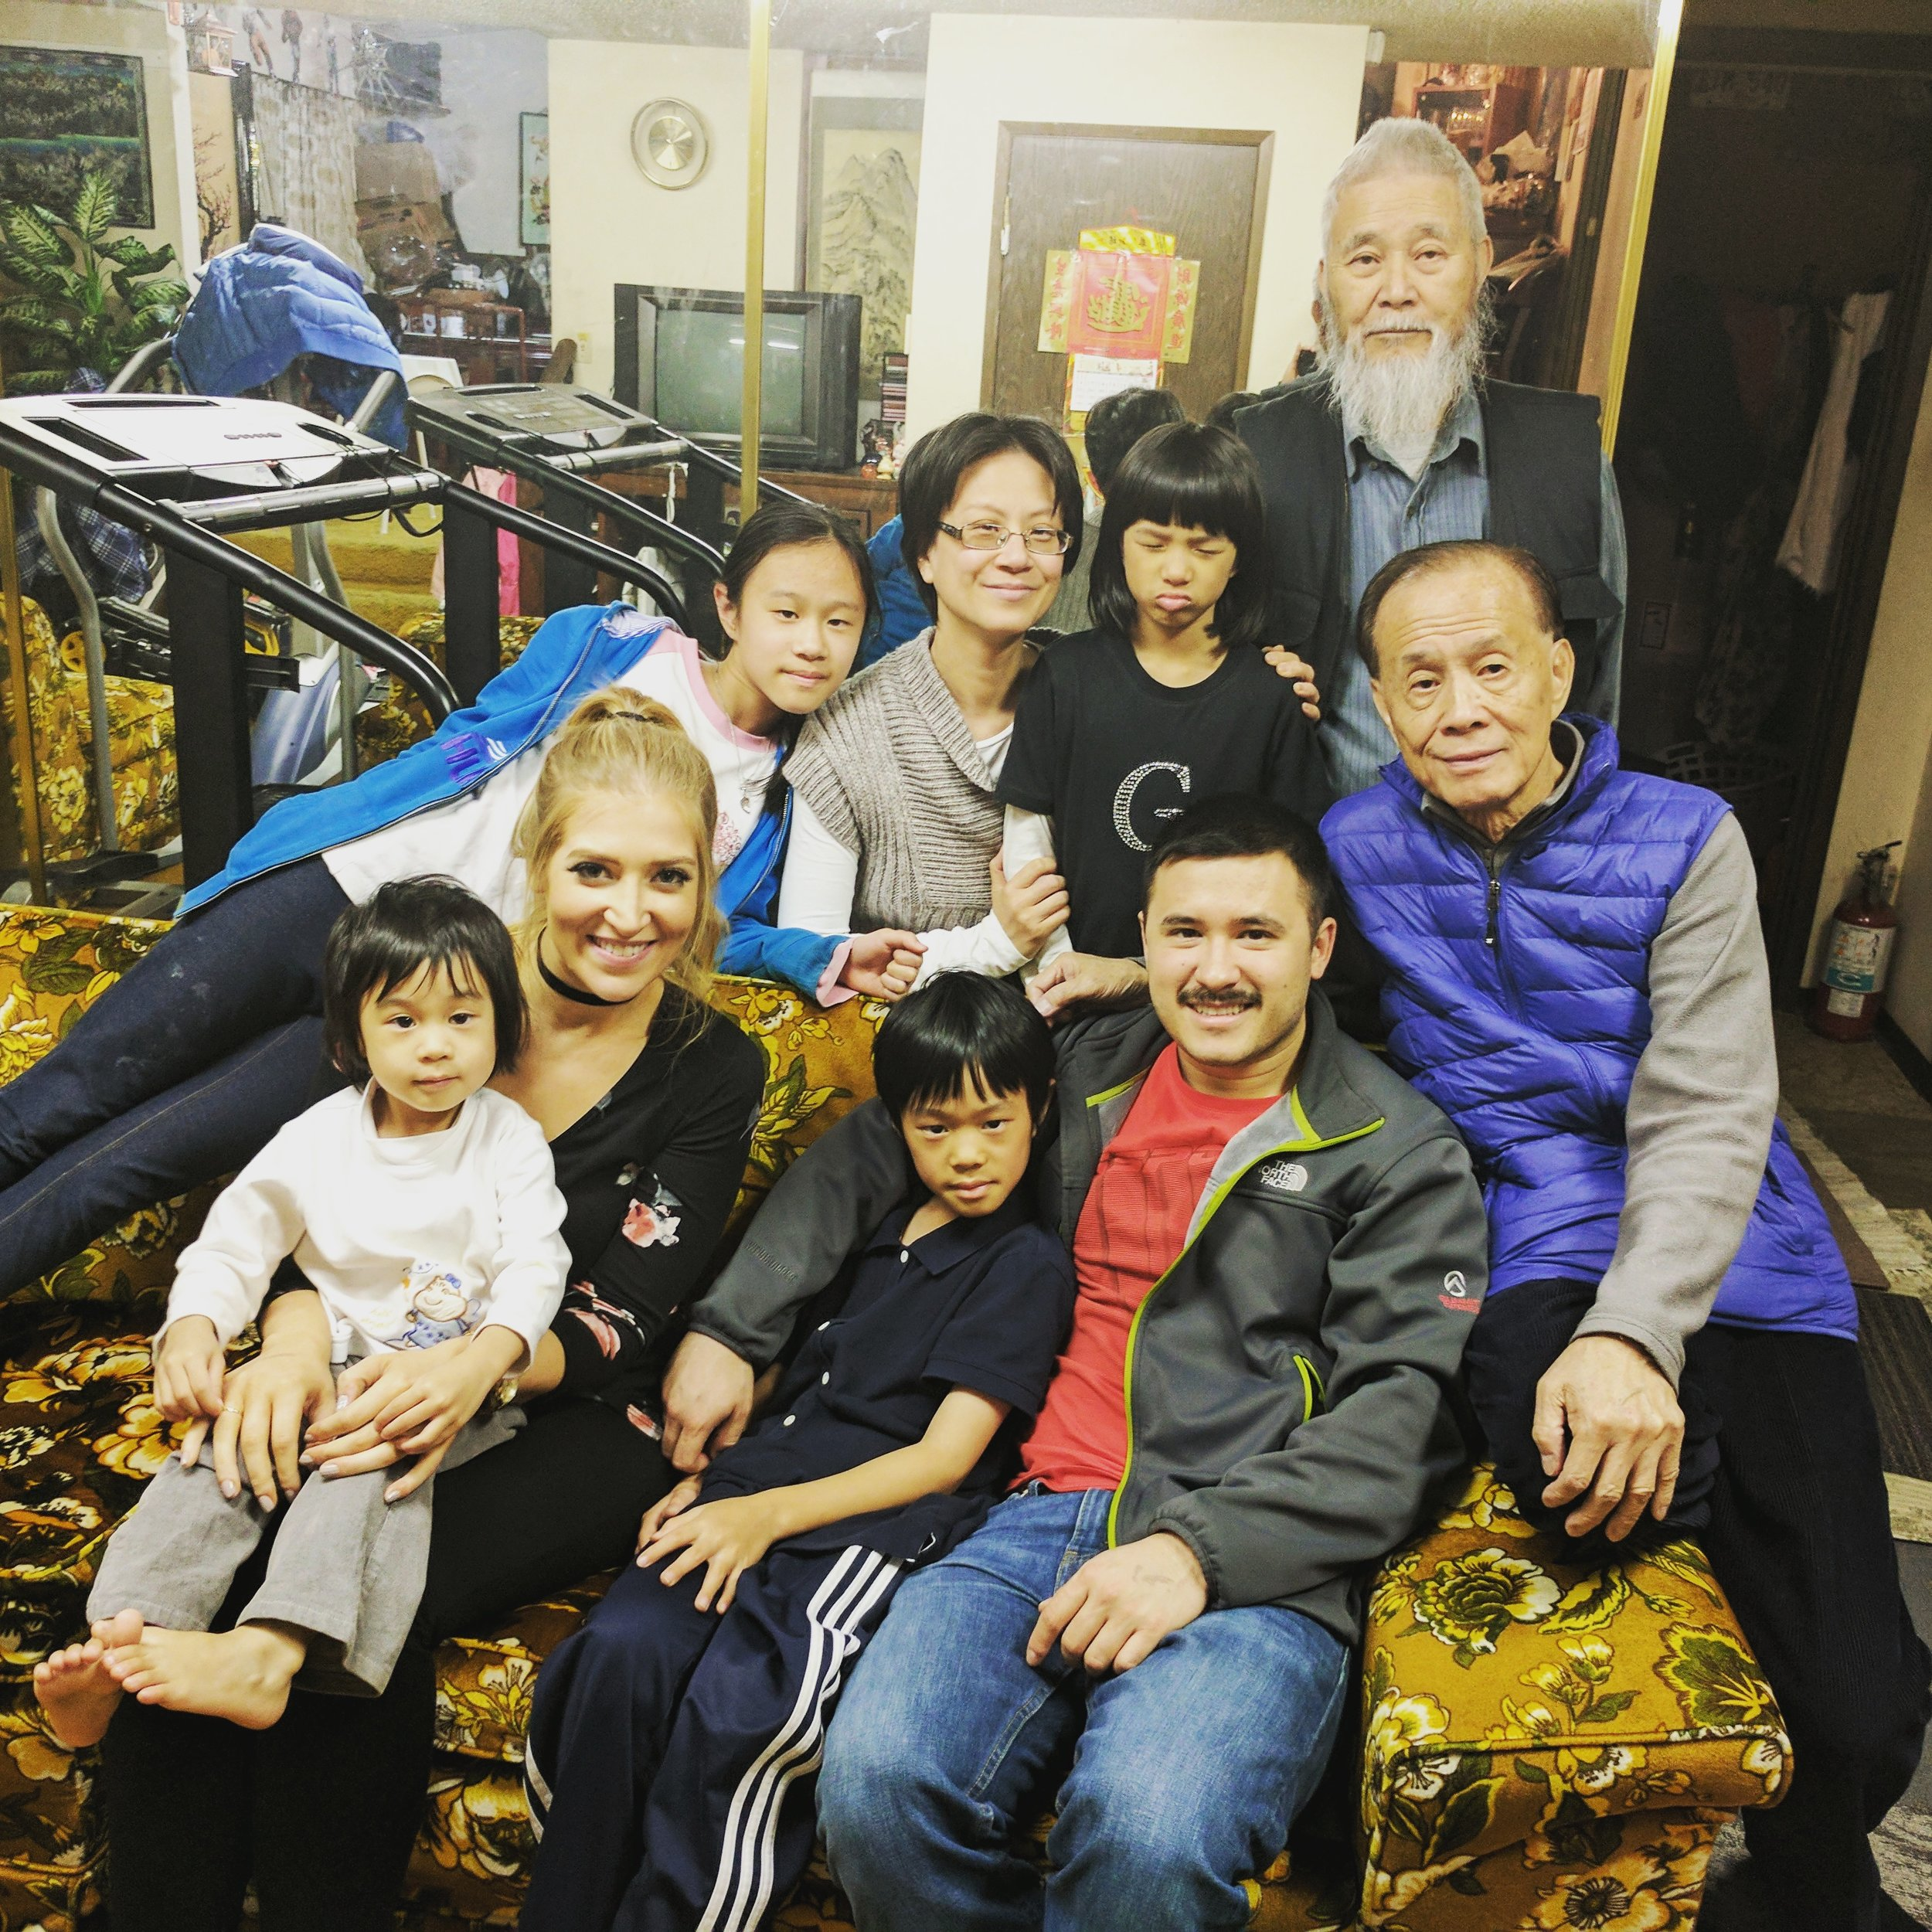 With Geoff's family